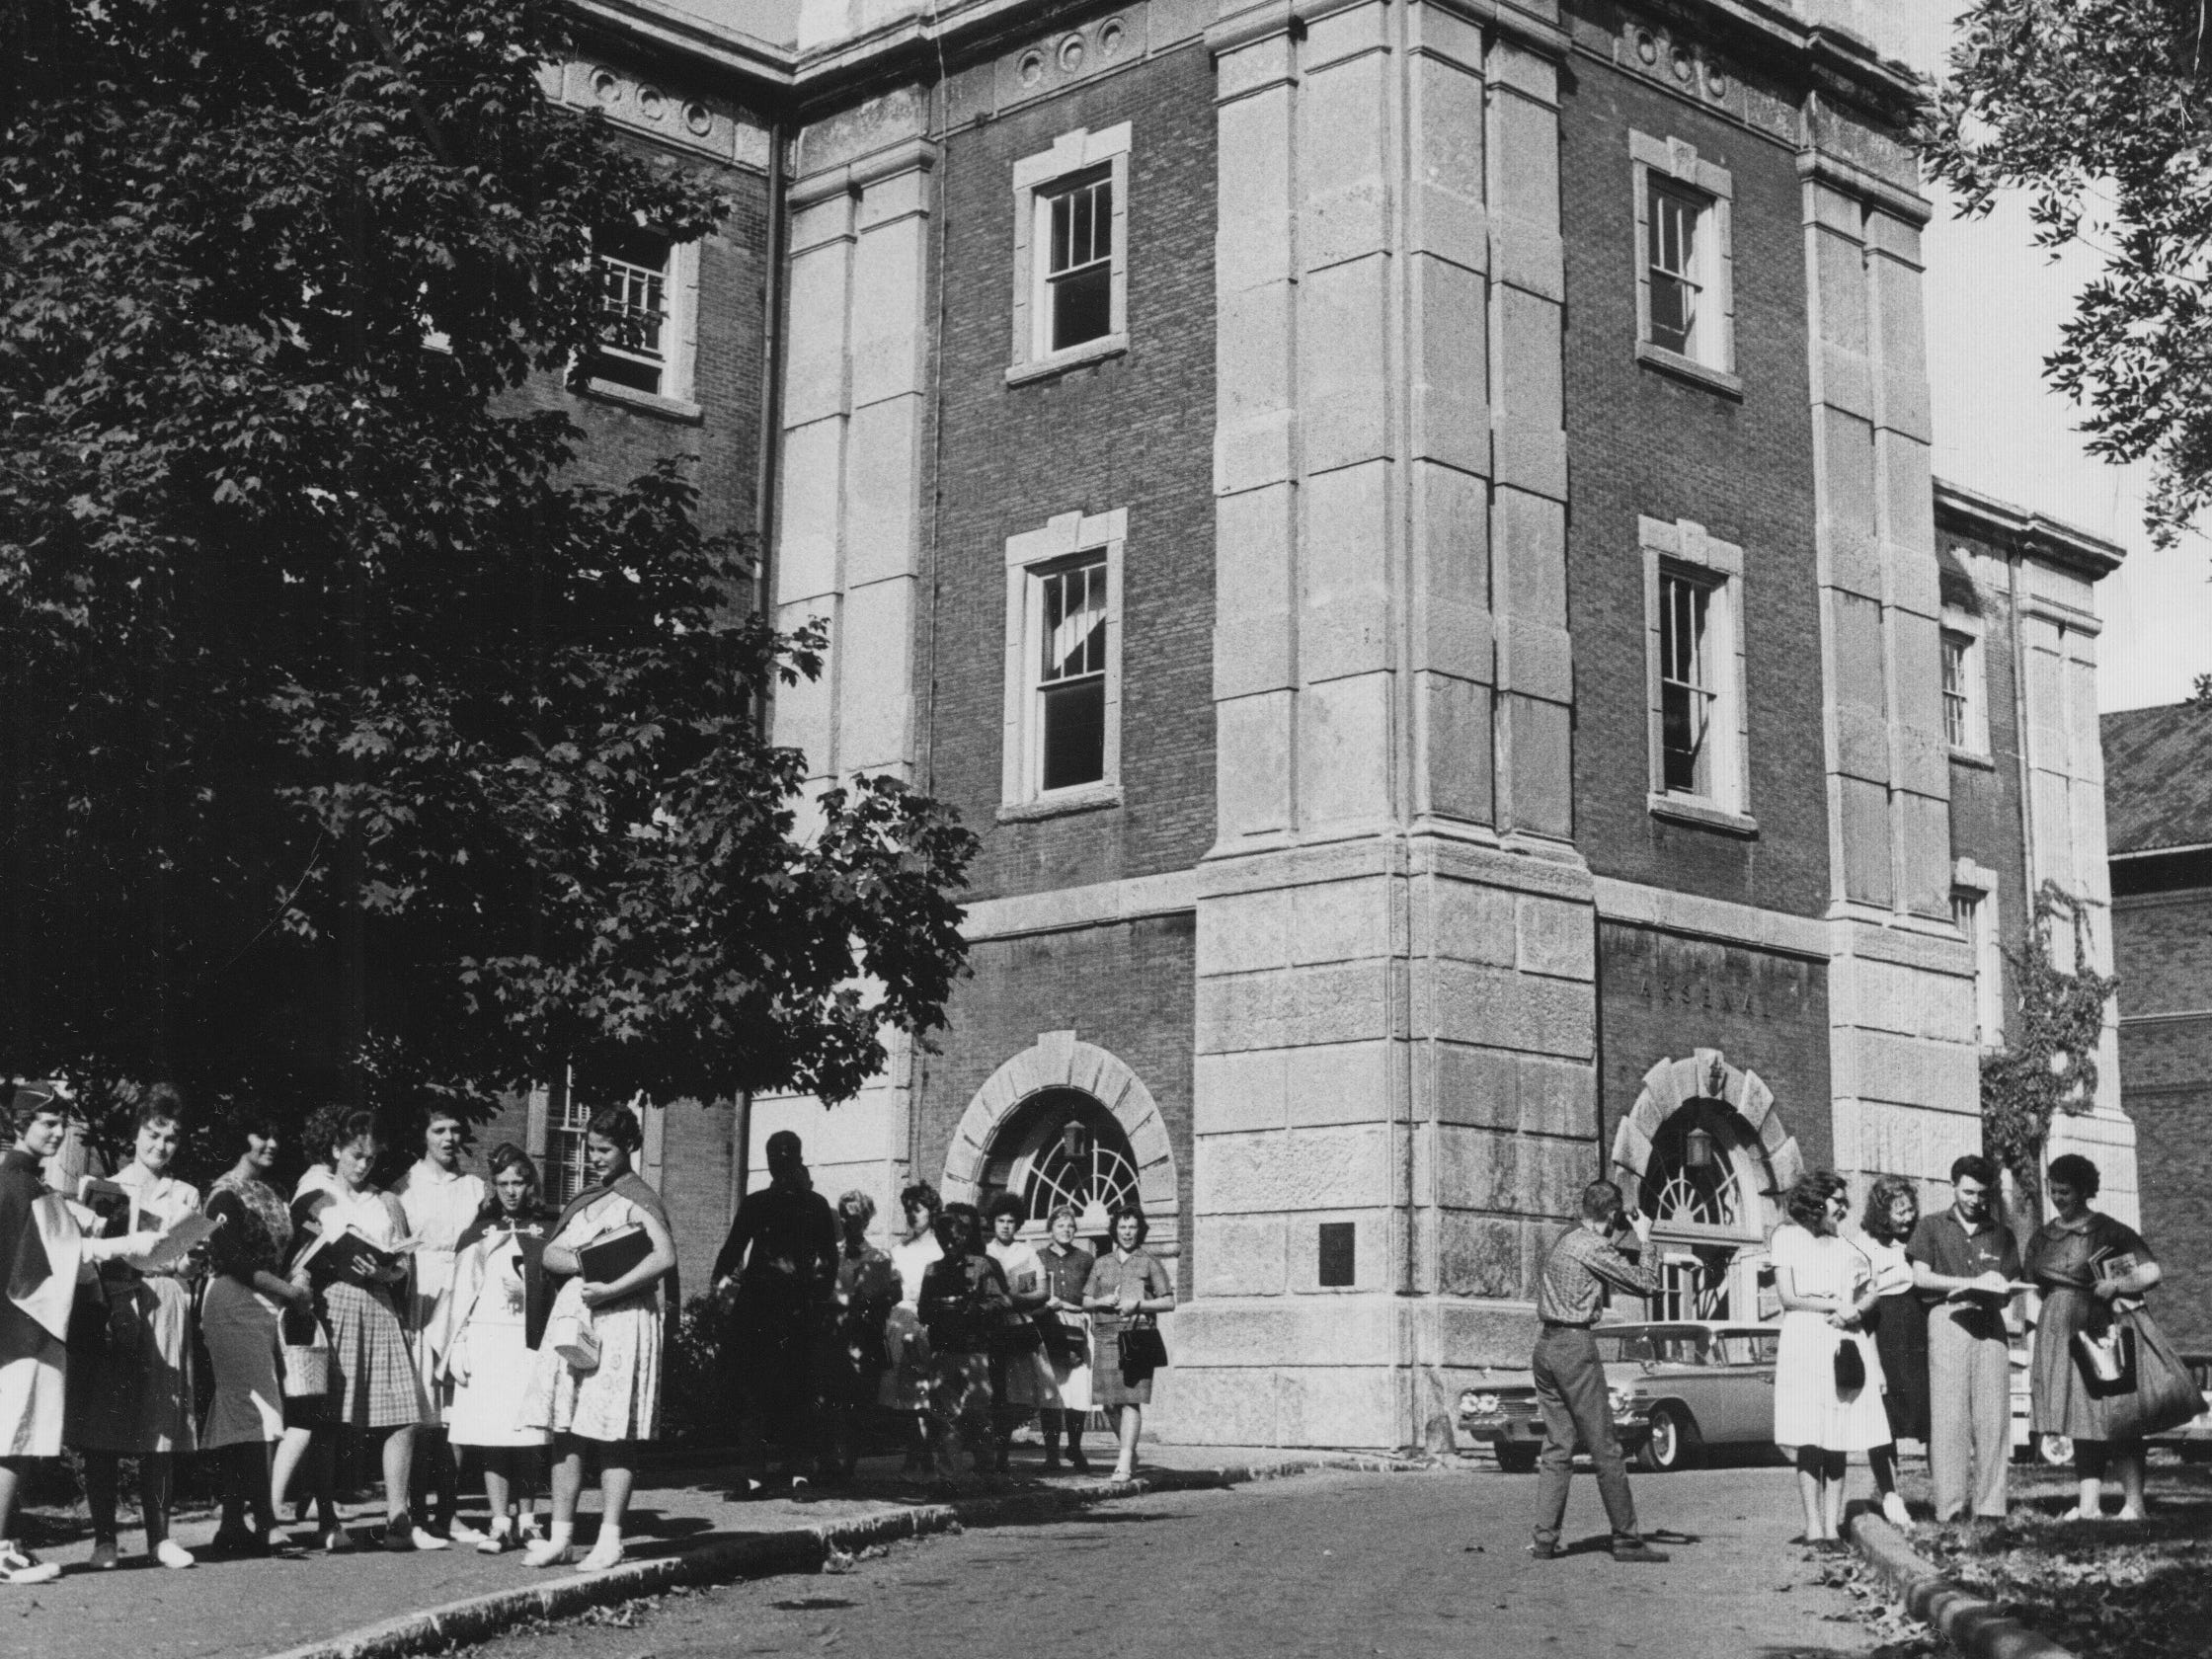 Arsenal Tech students gather in front of the school in 1961.